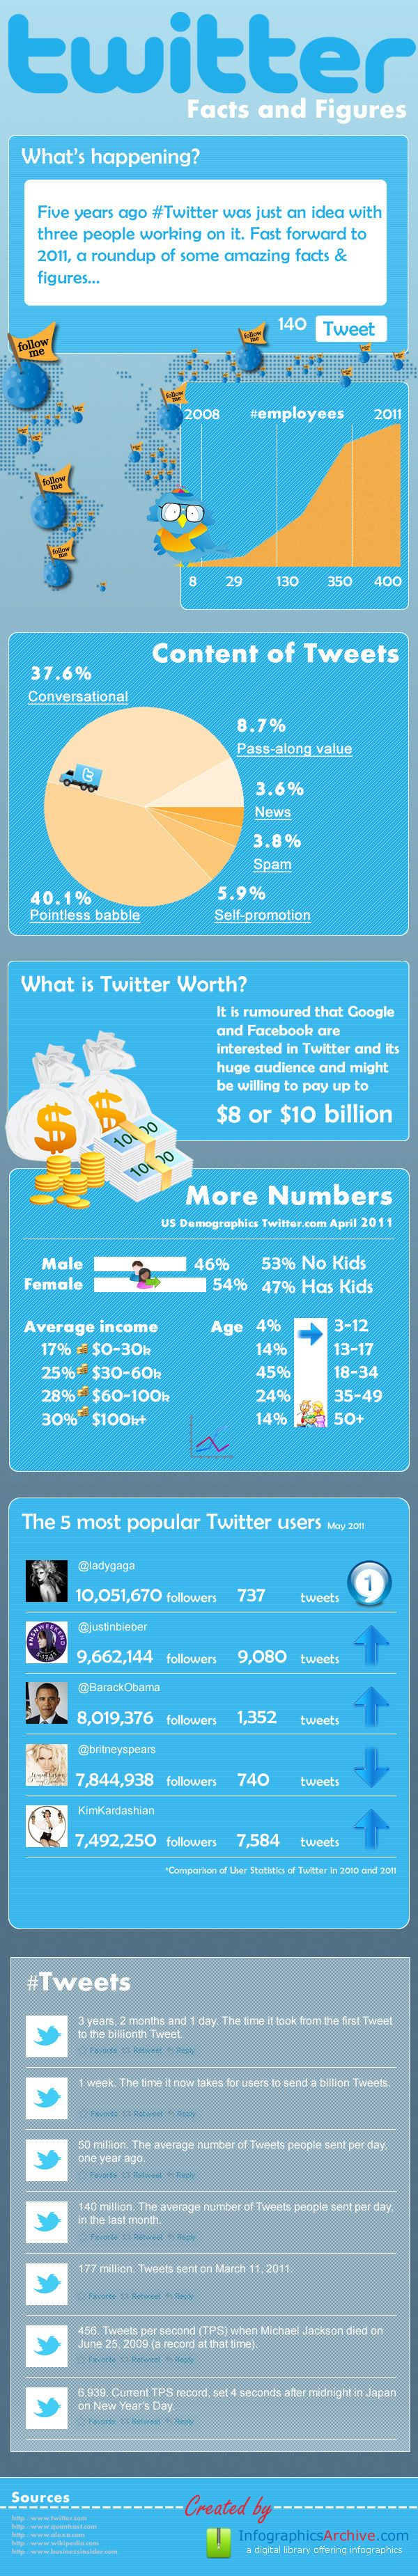 Twitter Facts And Figures: The